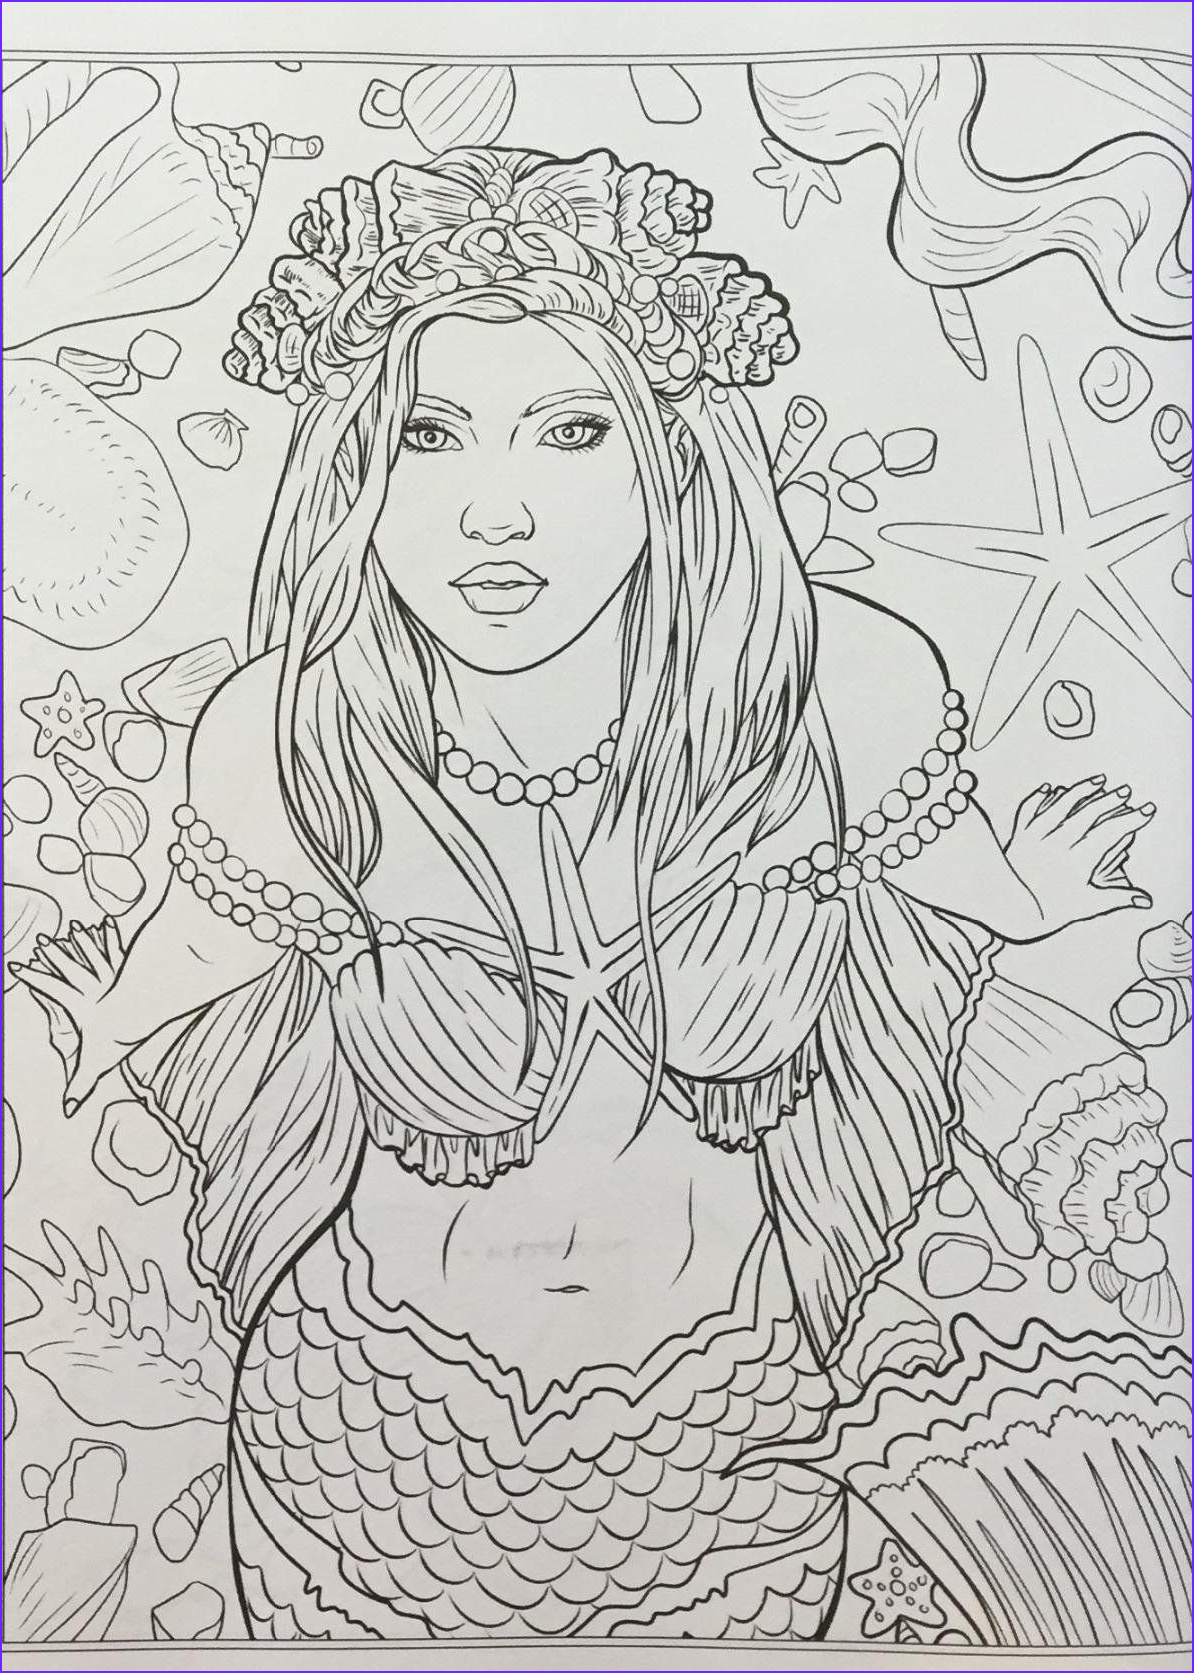 Mythical Mermaids Coloring Book Unique Collection Mythical Mermaids Fantasy Adult Coloring Book Fantasy